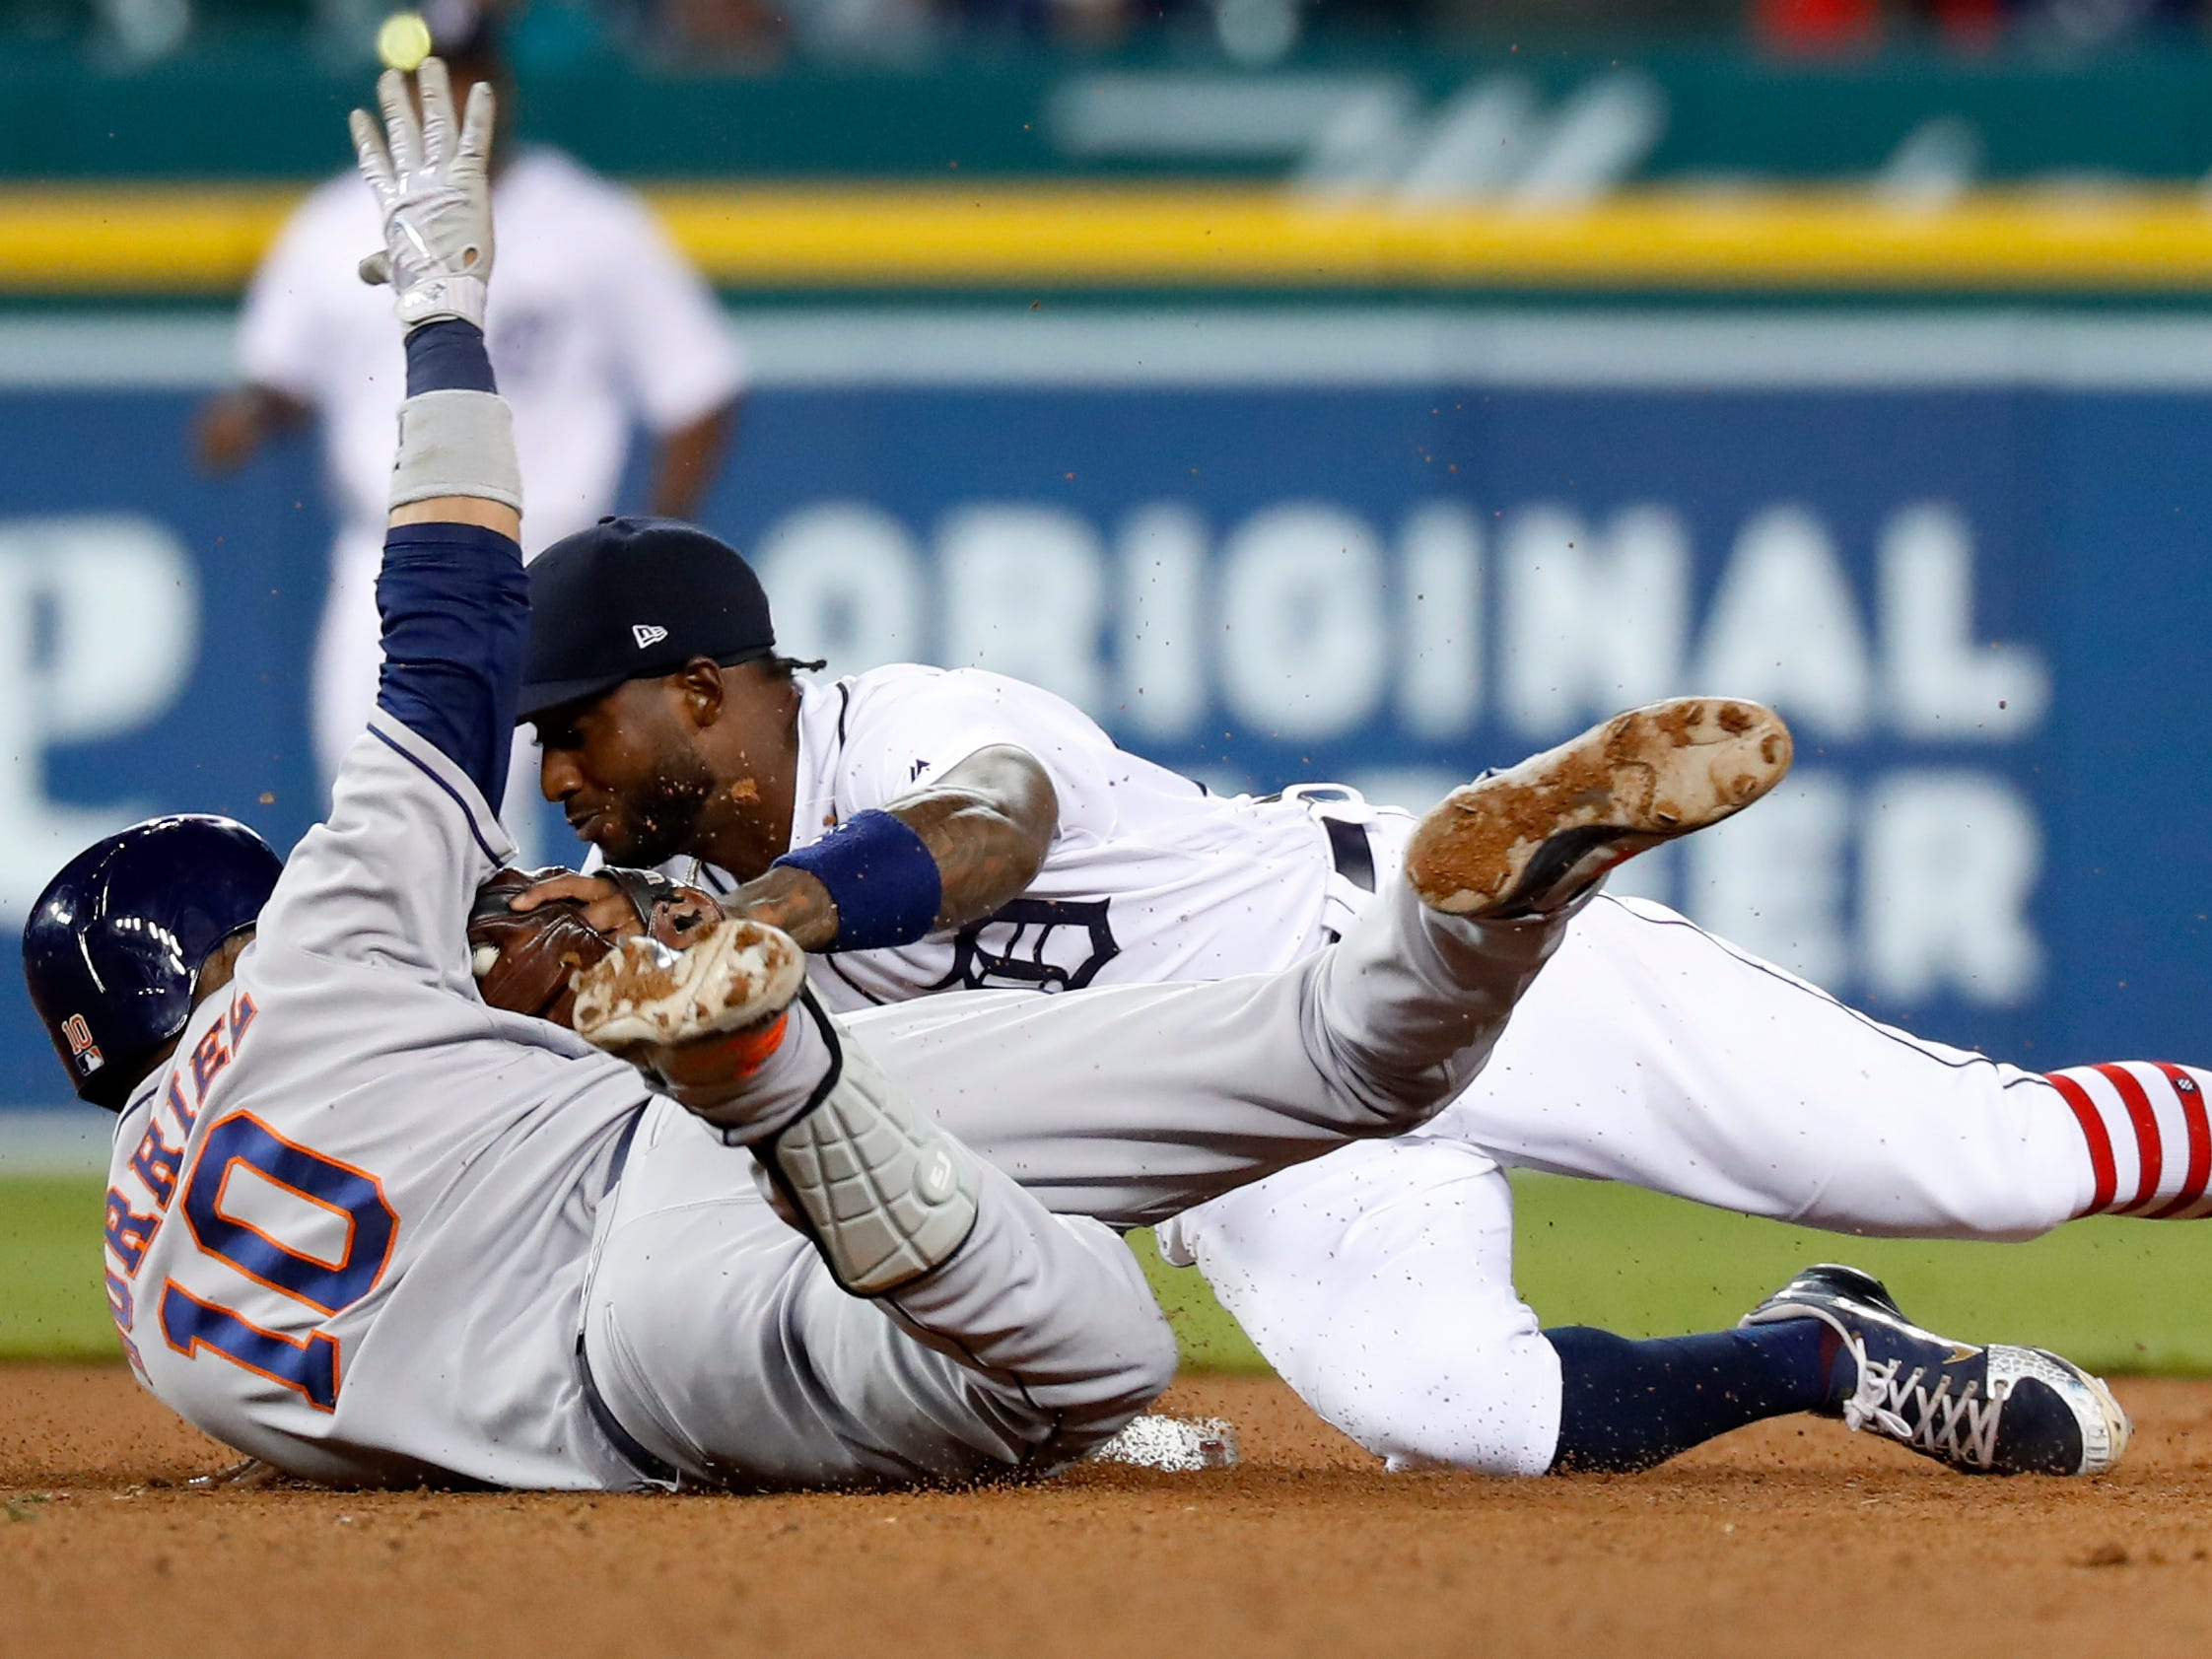 Detroit Tigers shortstop Niko Goodrum (28) tags Houston Astros' Yuli Gurriel (10) out at second base in the ninth inning of a baseball game in Detroit, Tuesday, Sept. 11, 2018.